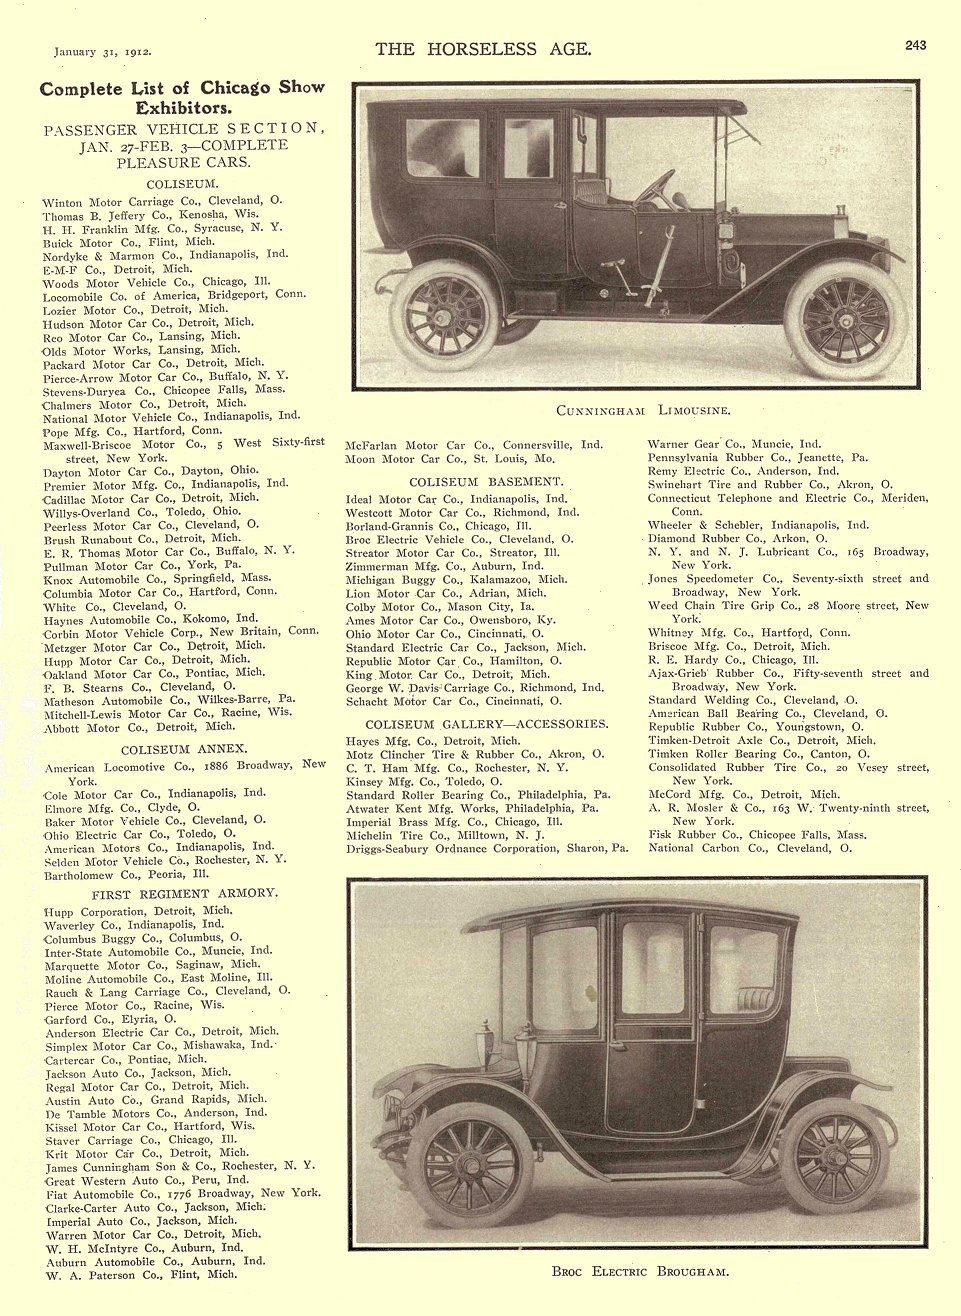 1912 1 31 BROC Electric Broc Electric Brougham THE HORSELESS AGE January 31, 1912 8.75″x11.75″ University of Minnesota Library page 243